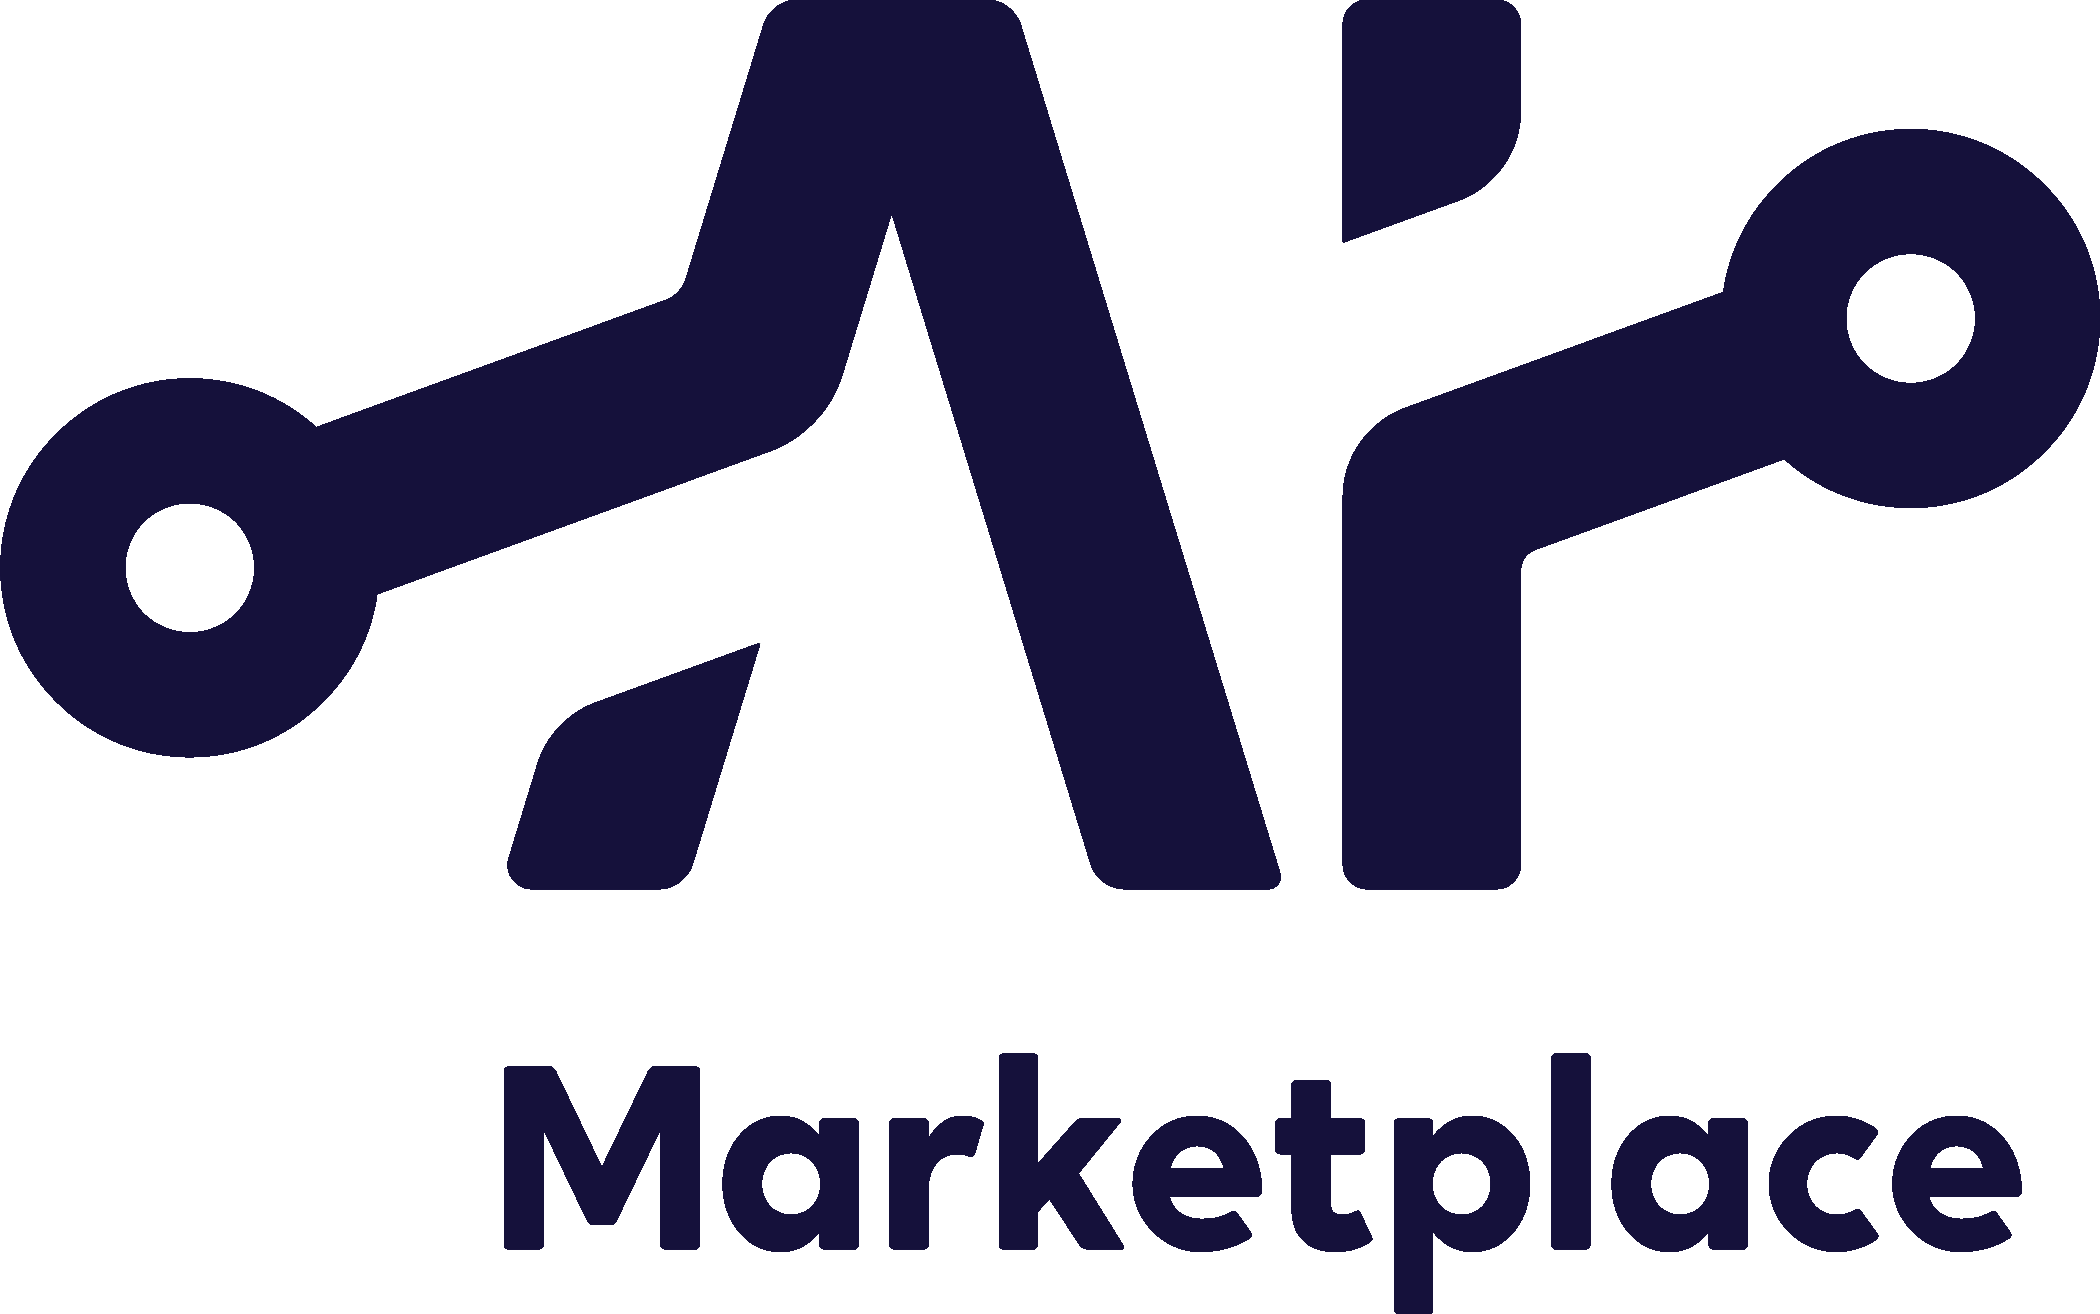 Marketplace is one of GoodIP's partners